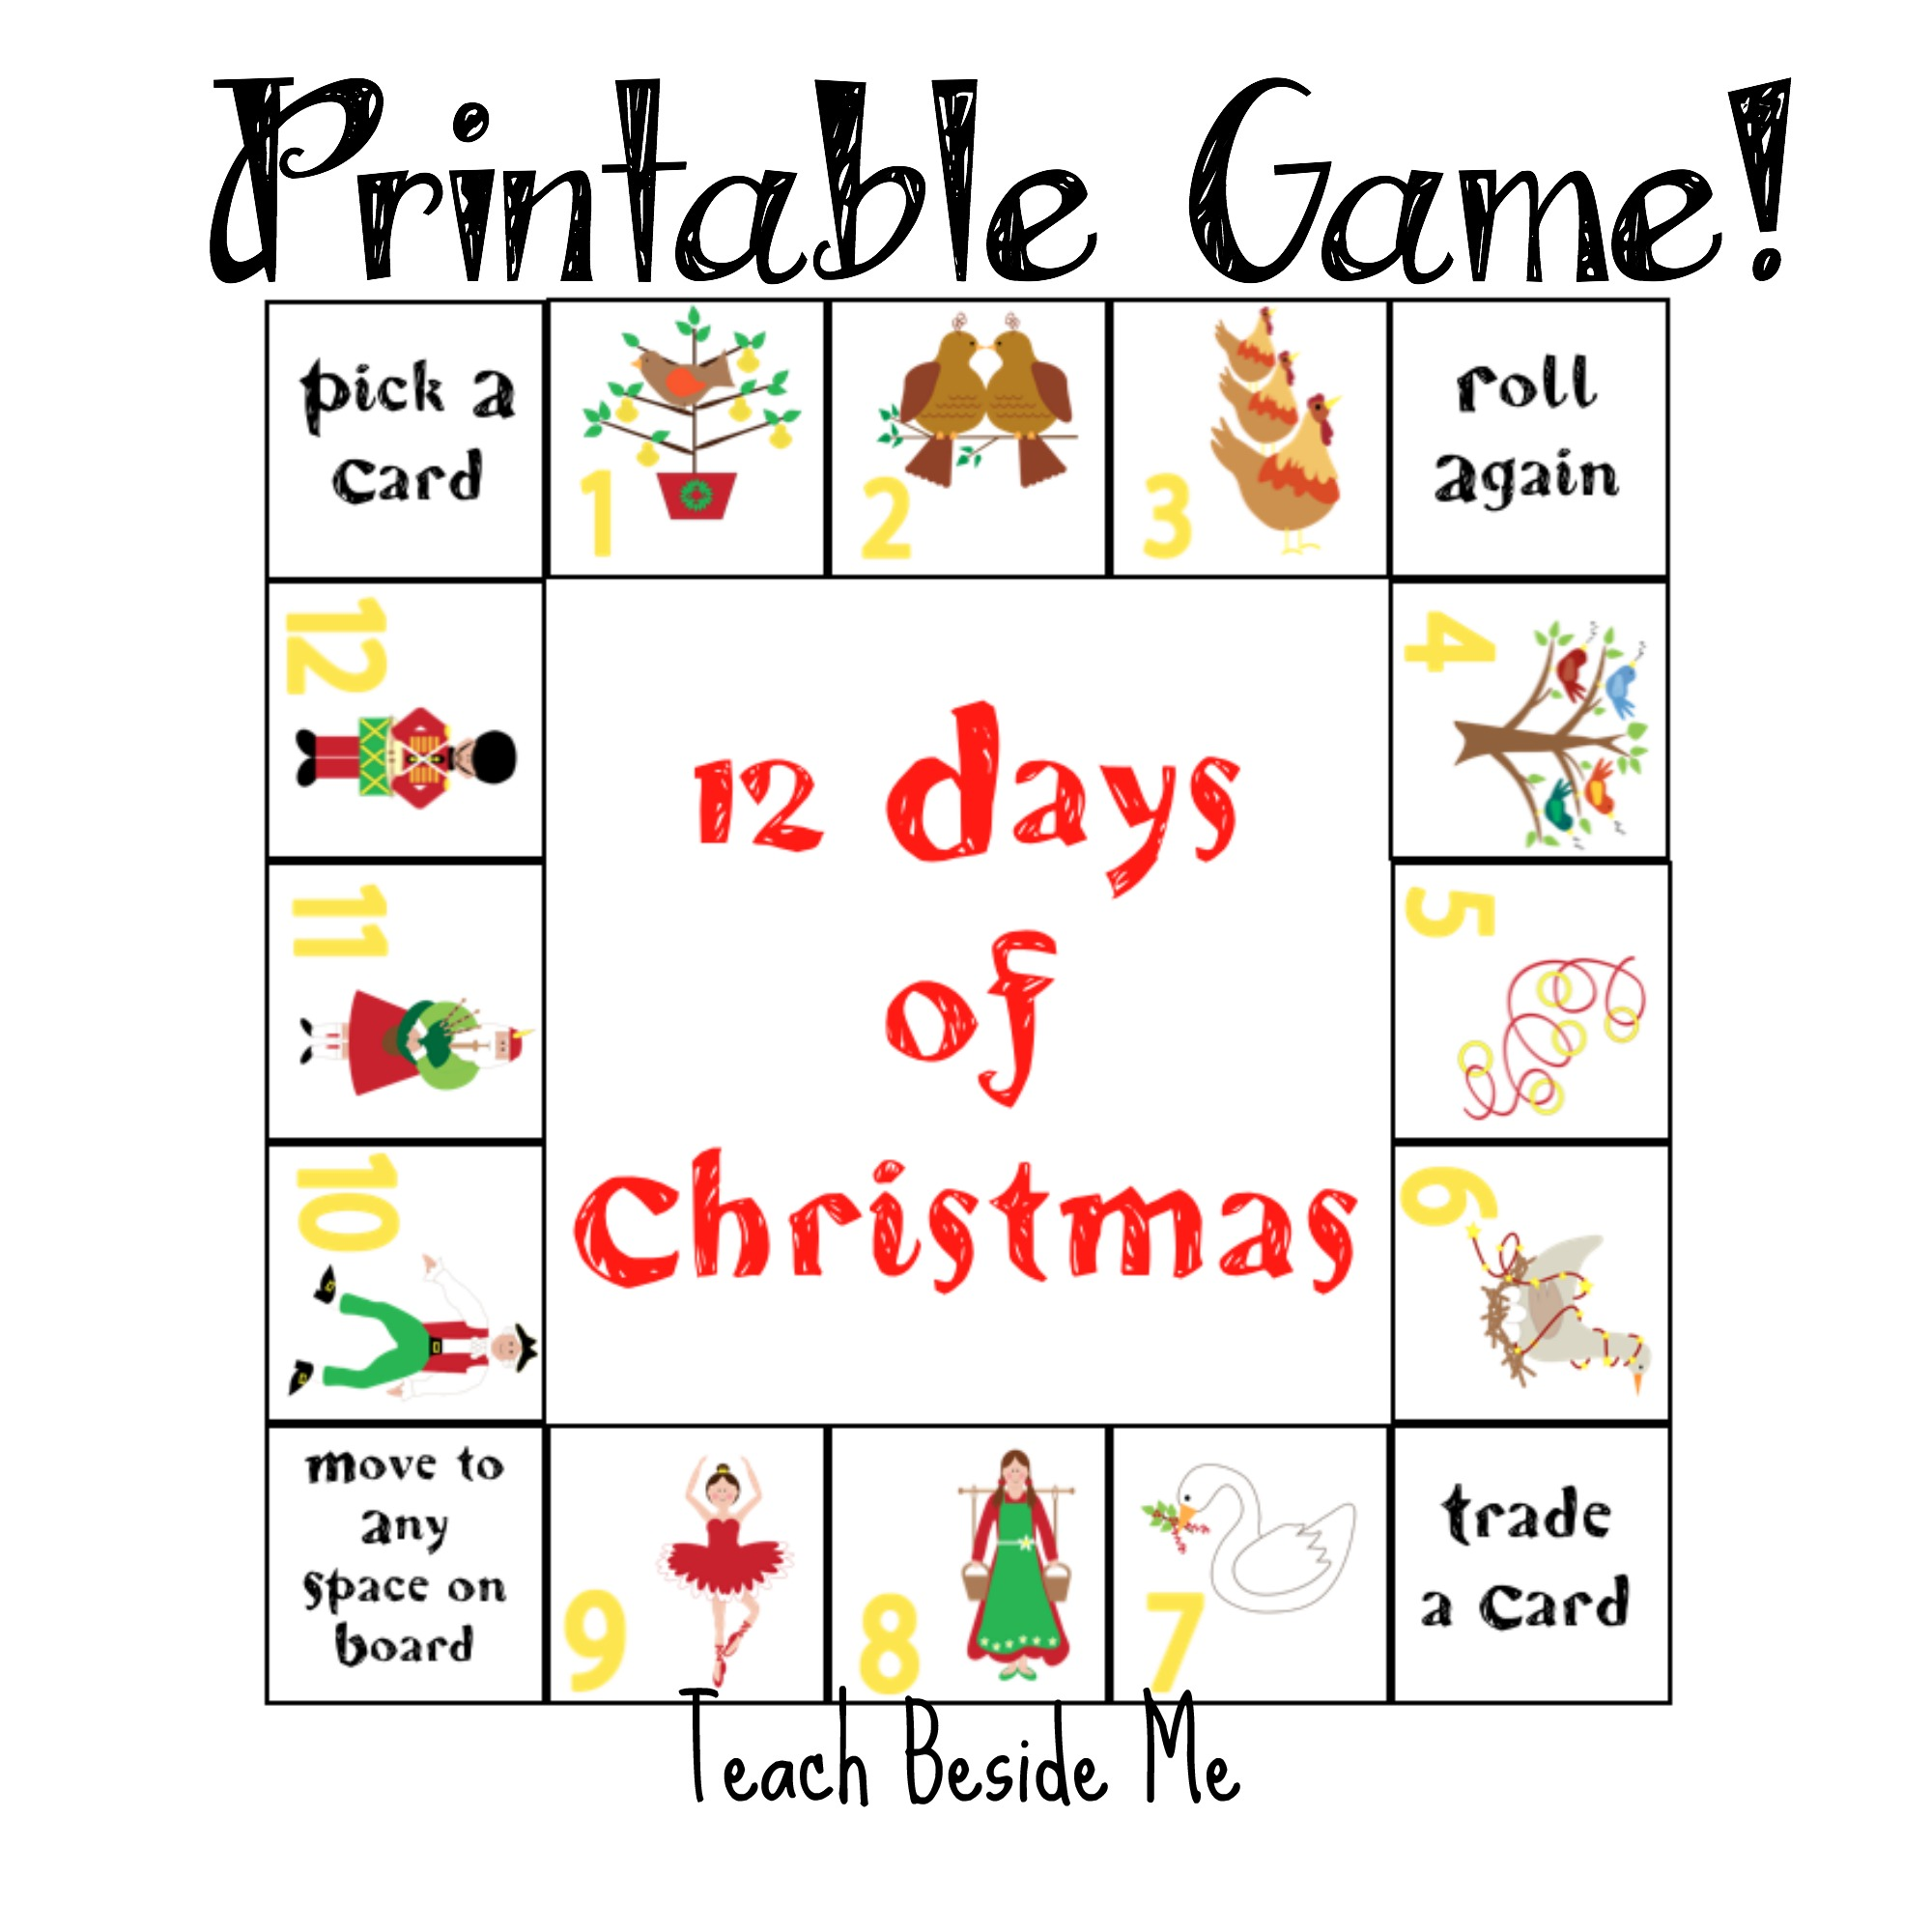 12 Days Of Christmas Lyrics.12 Days Of Christmas Printable Game Teach Beside Me